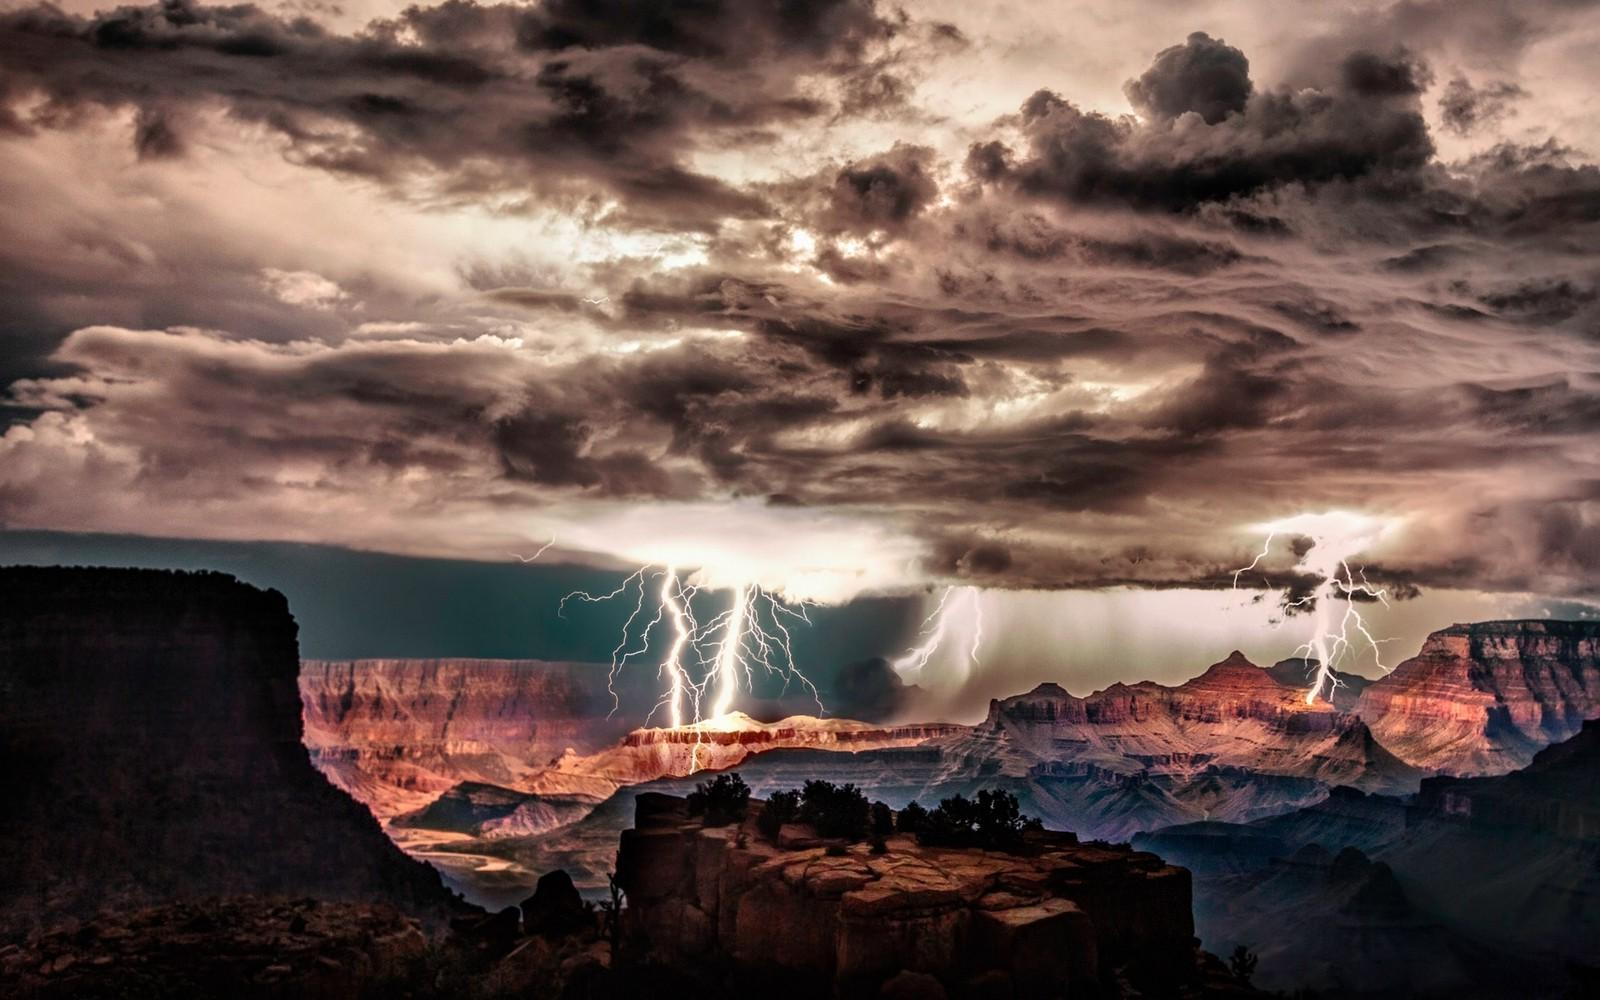 Grand Canyon, Lightning, Storm, Clouds, Night, Cliff, Erosion